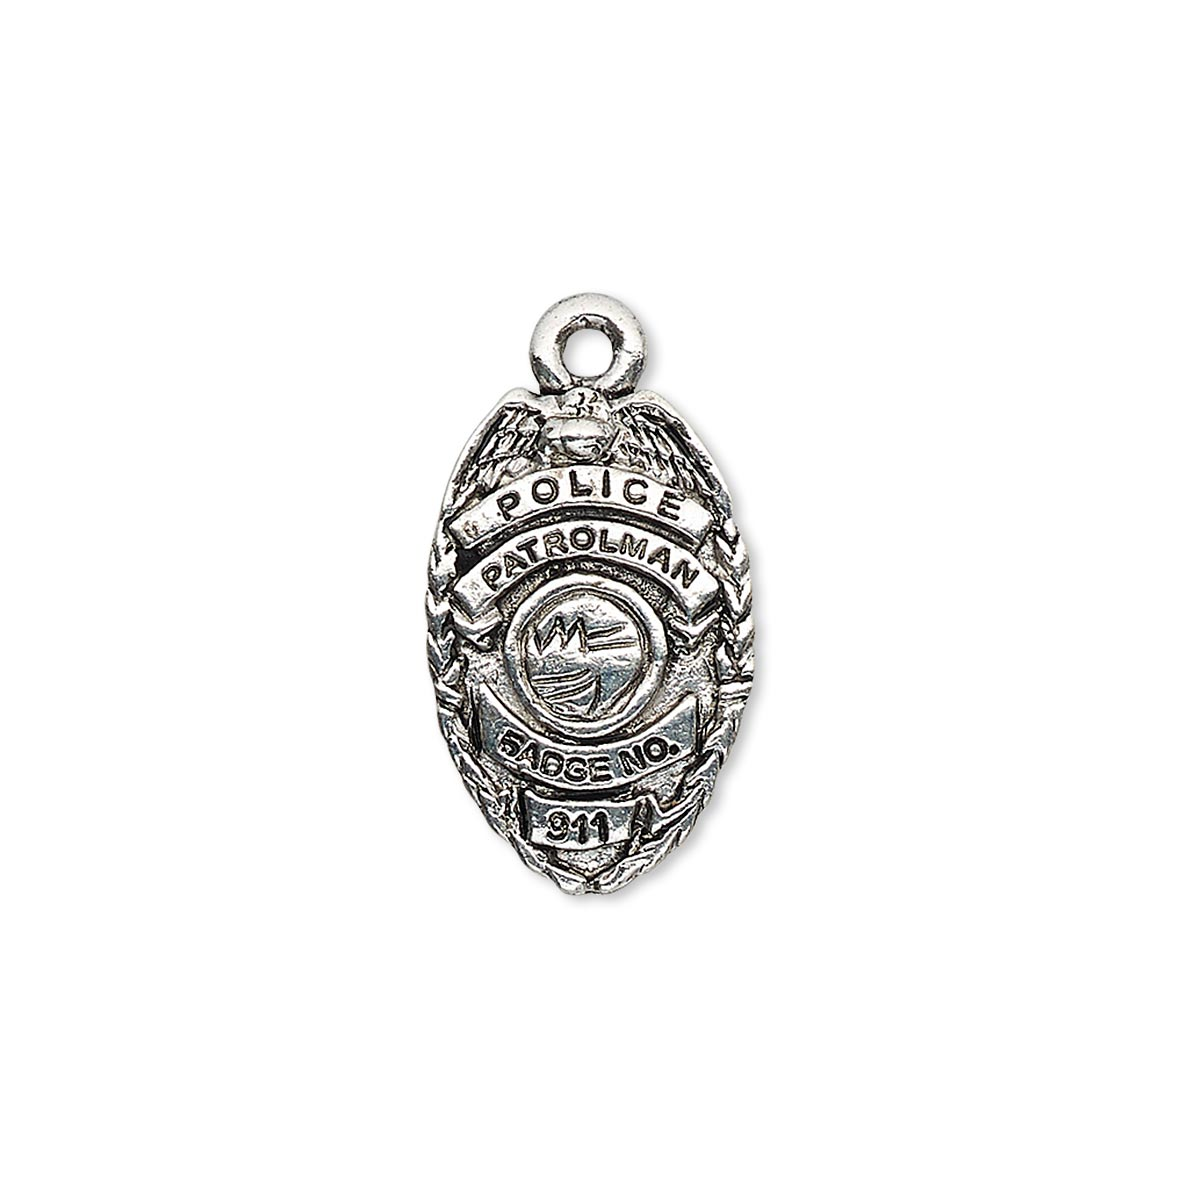 Charm antique copper plated pewter tin based alloy 19x12mm charm antique silver plated pewter tin based alloy 19x12mm single sided police badge with police patrolman badge no 911 sold per pkg of 2 mozeypictures Choice Image